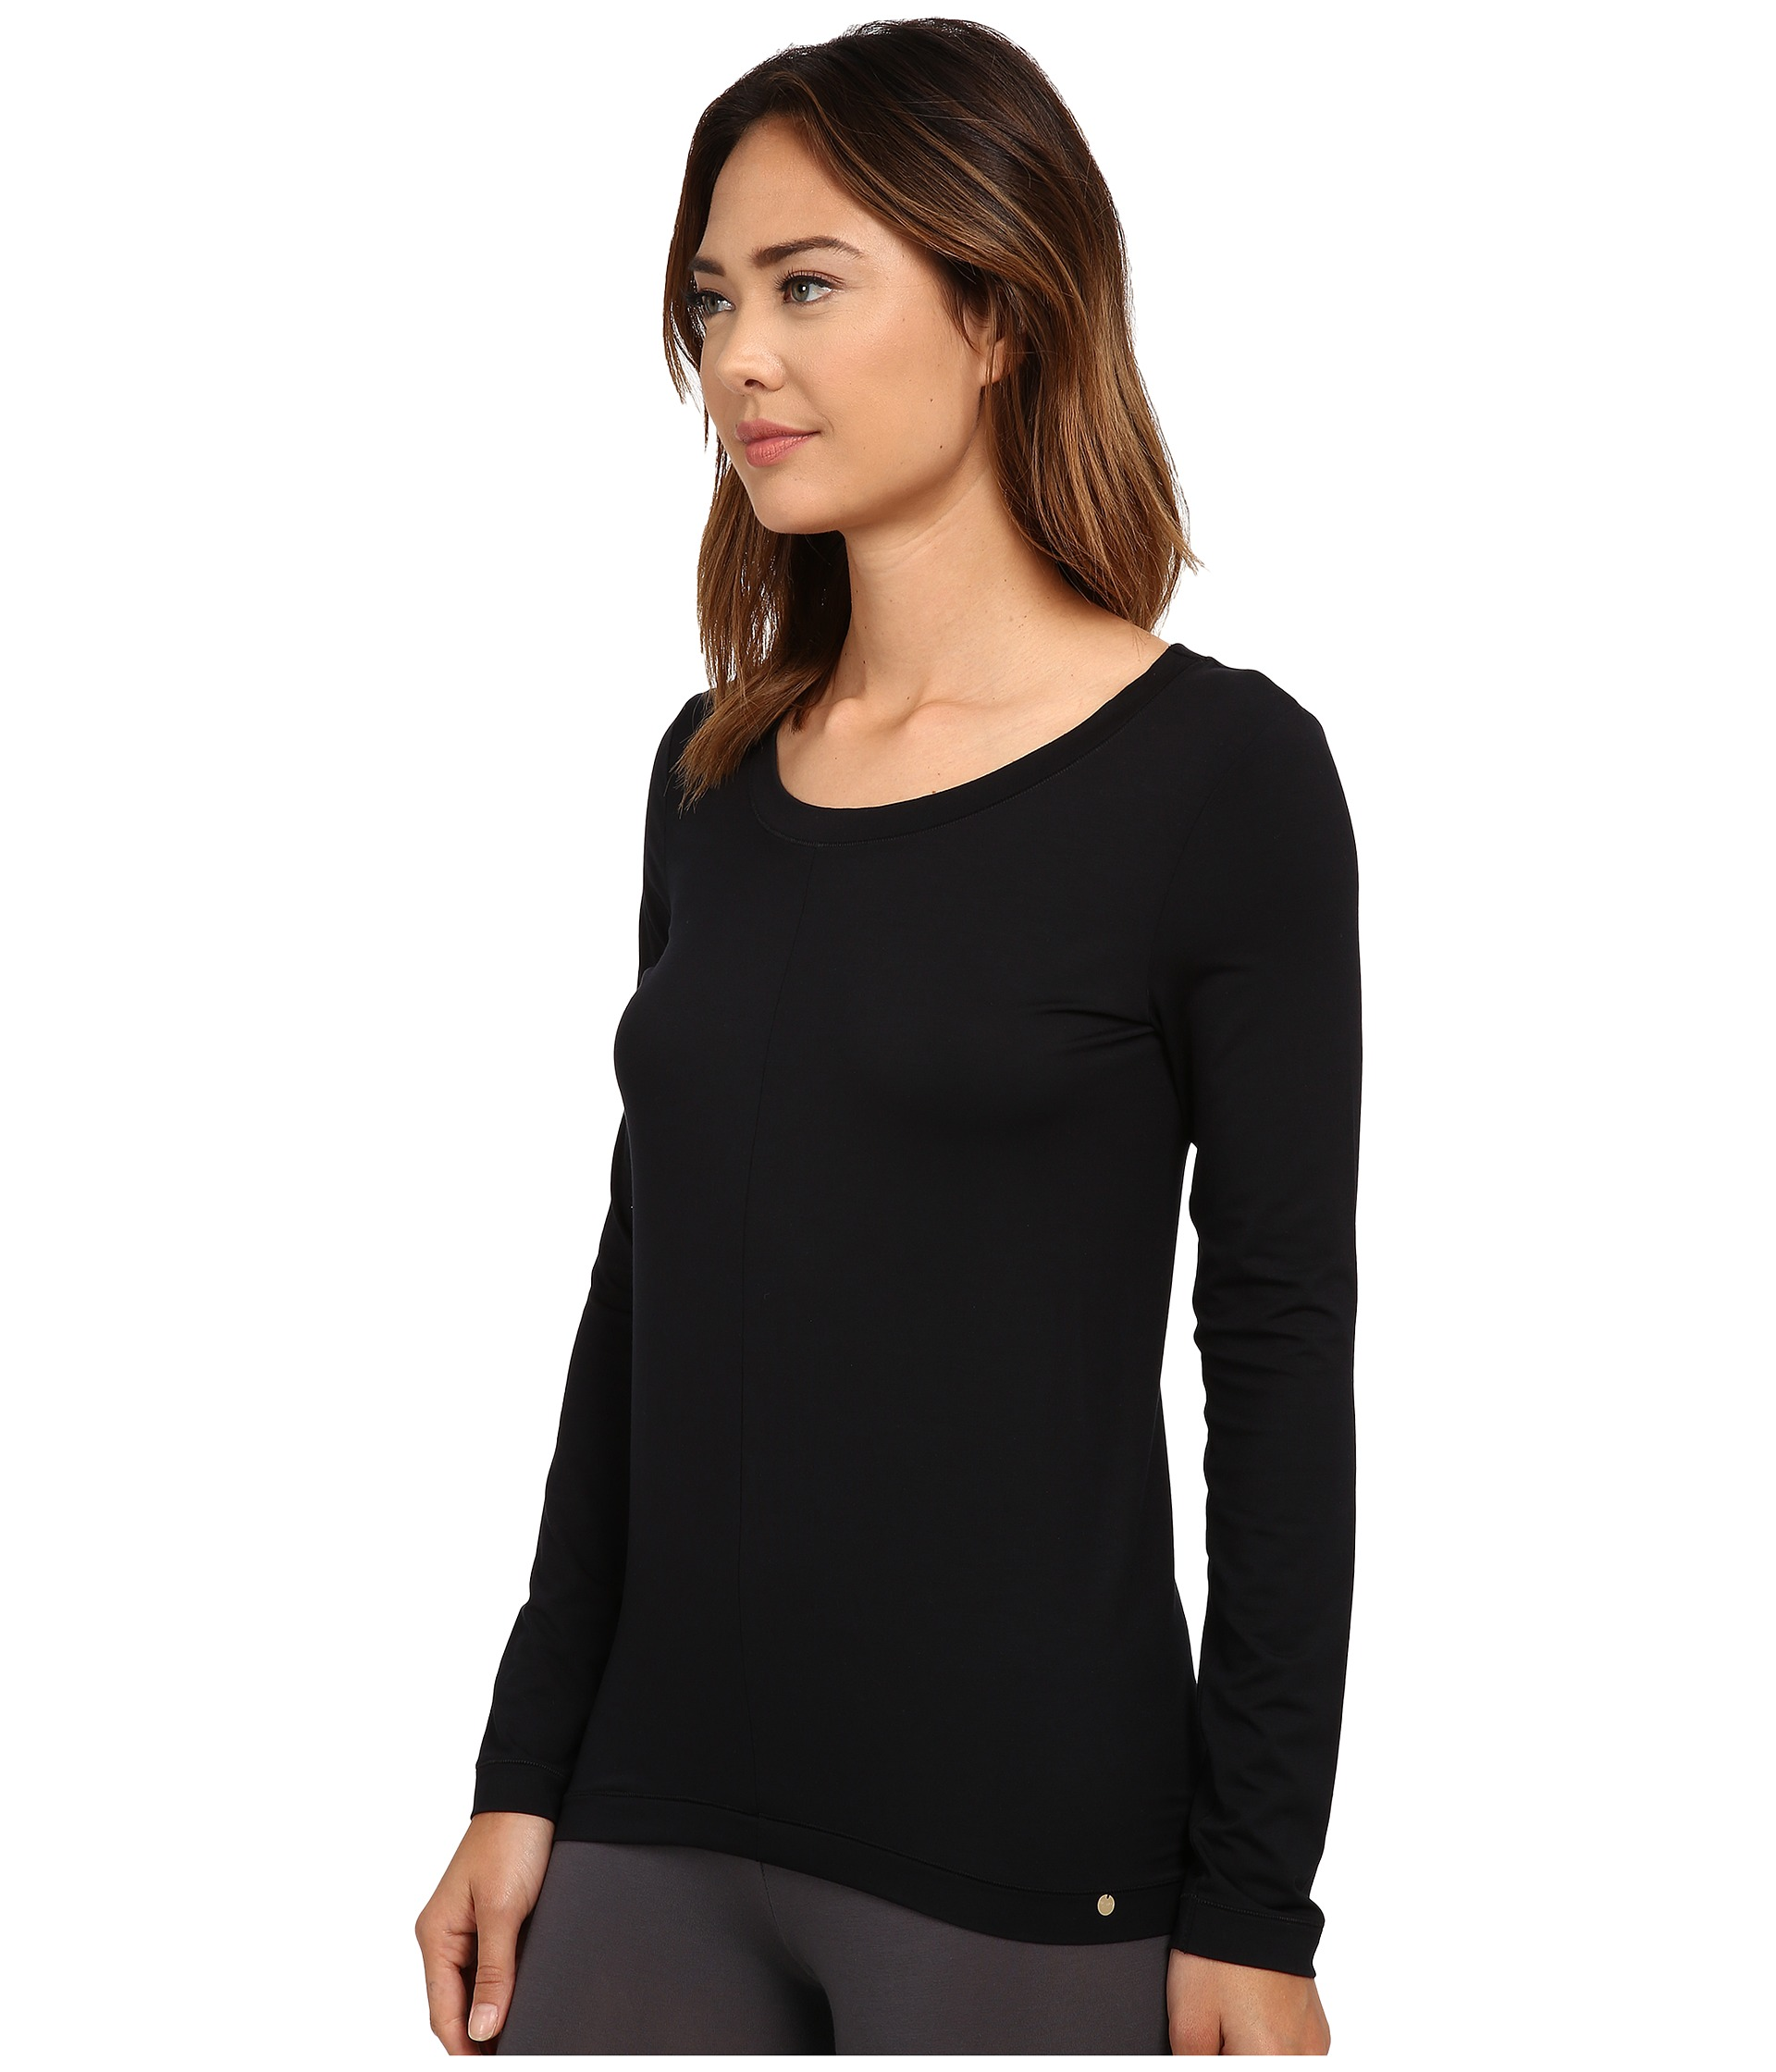 Hanro Yoga Basics Long Sleeve Top At Zappos.com